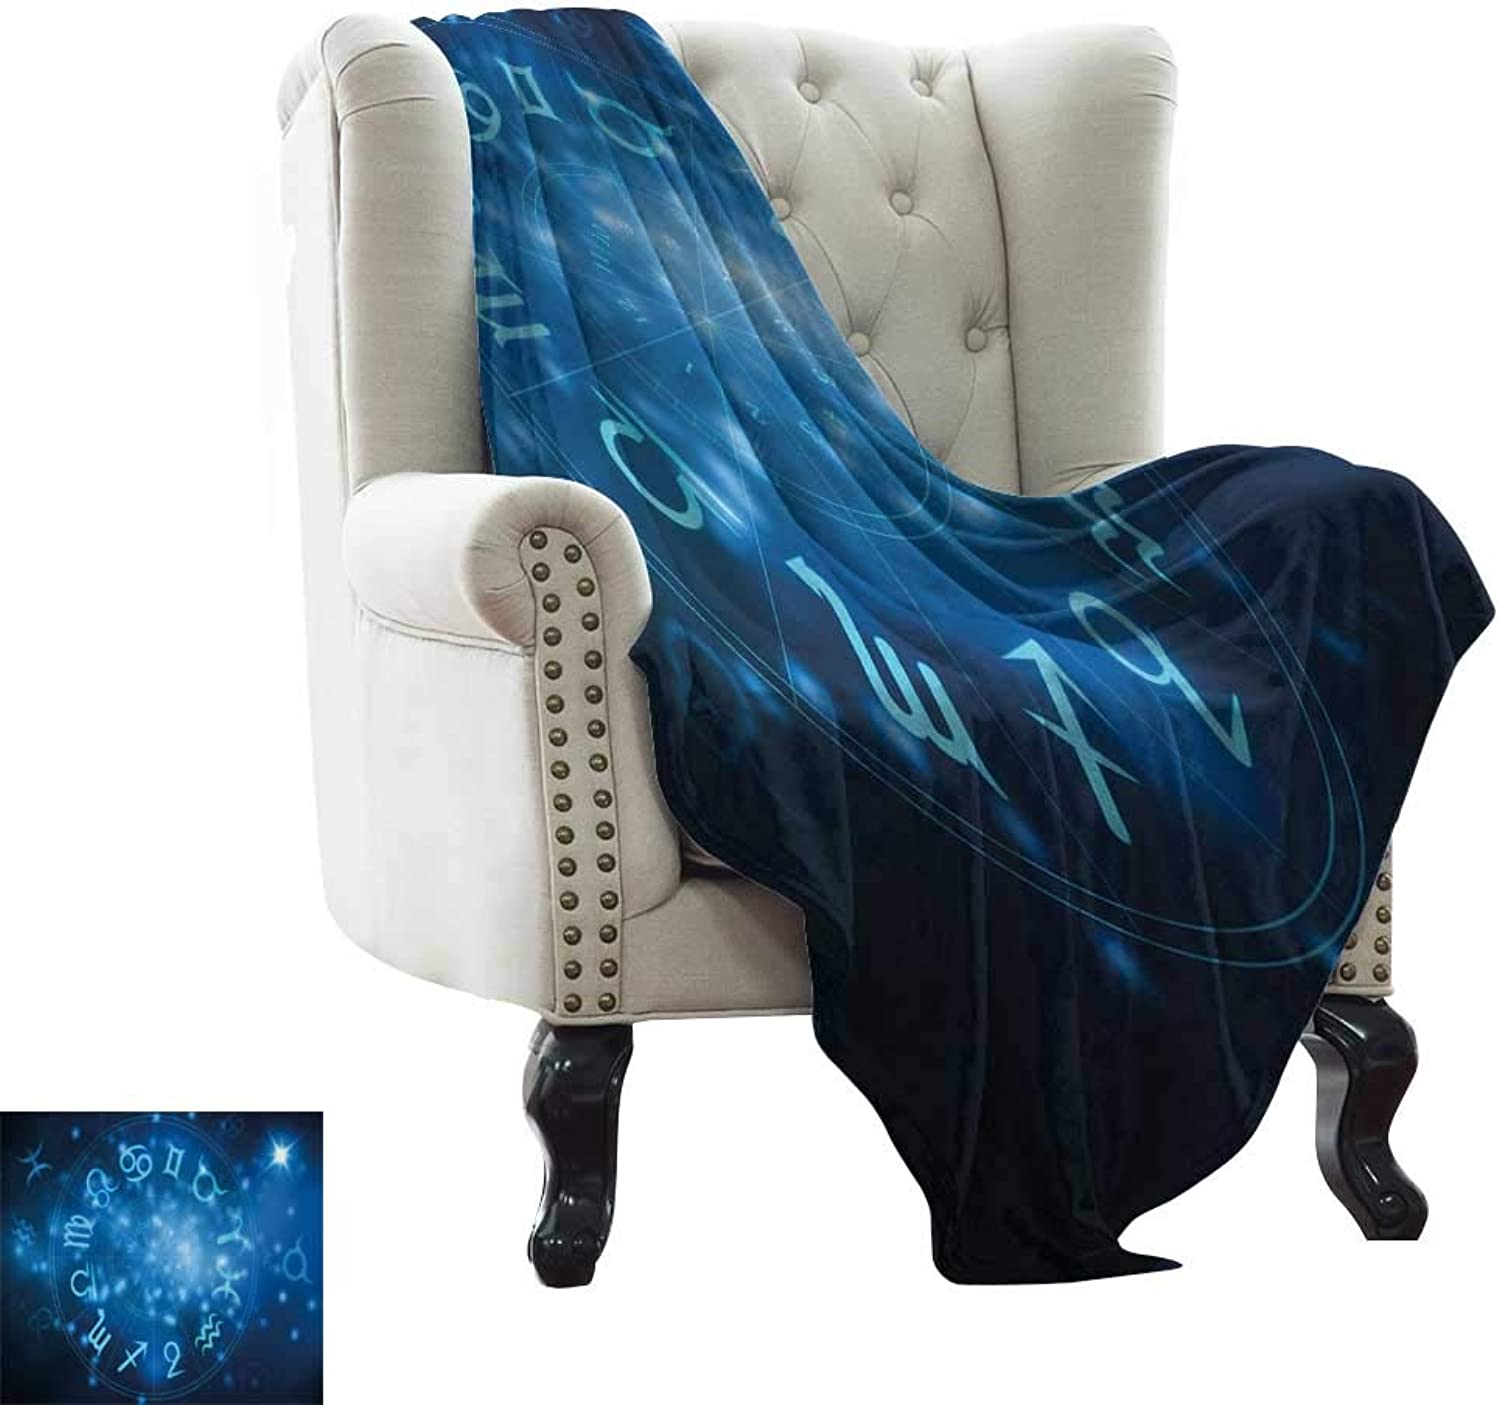 Furry Blanket Astrology,Abstract Hgoldscope Wheel with Signs Aquarius Lion Taurus Libra,Navy bluee White and Sky bluee Weighted for Adults Kids, Better Deeper Sleep 50 x60